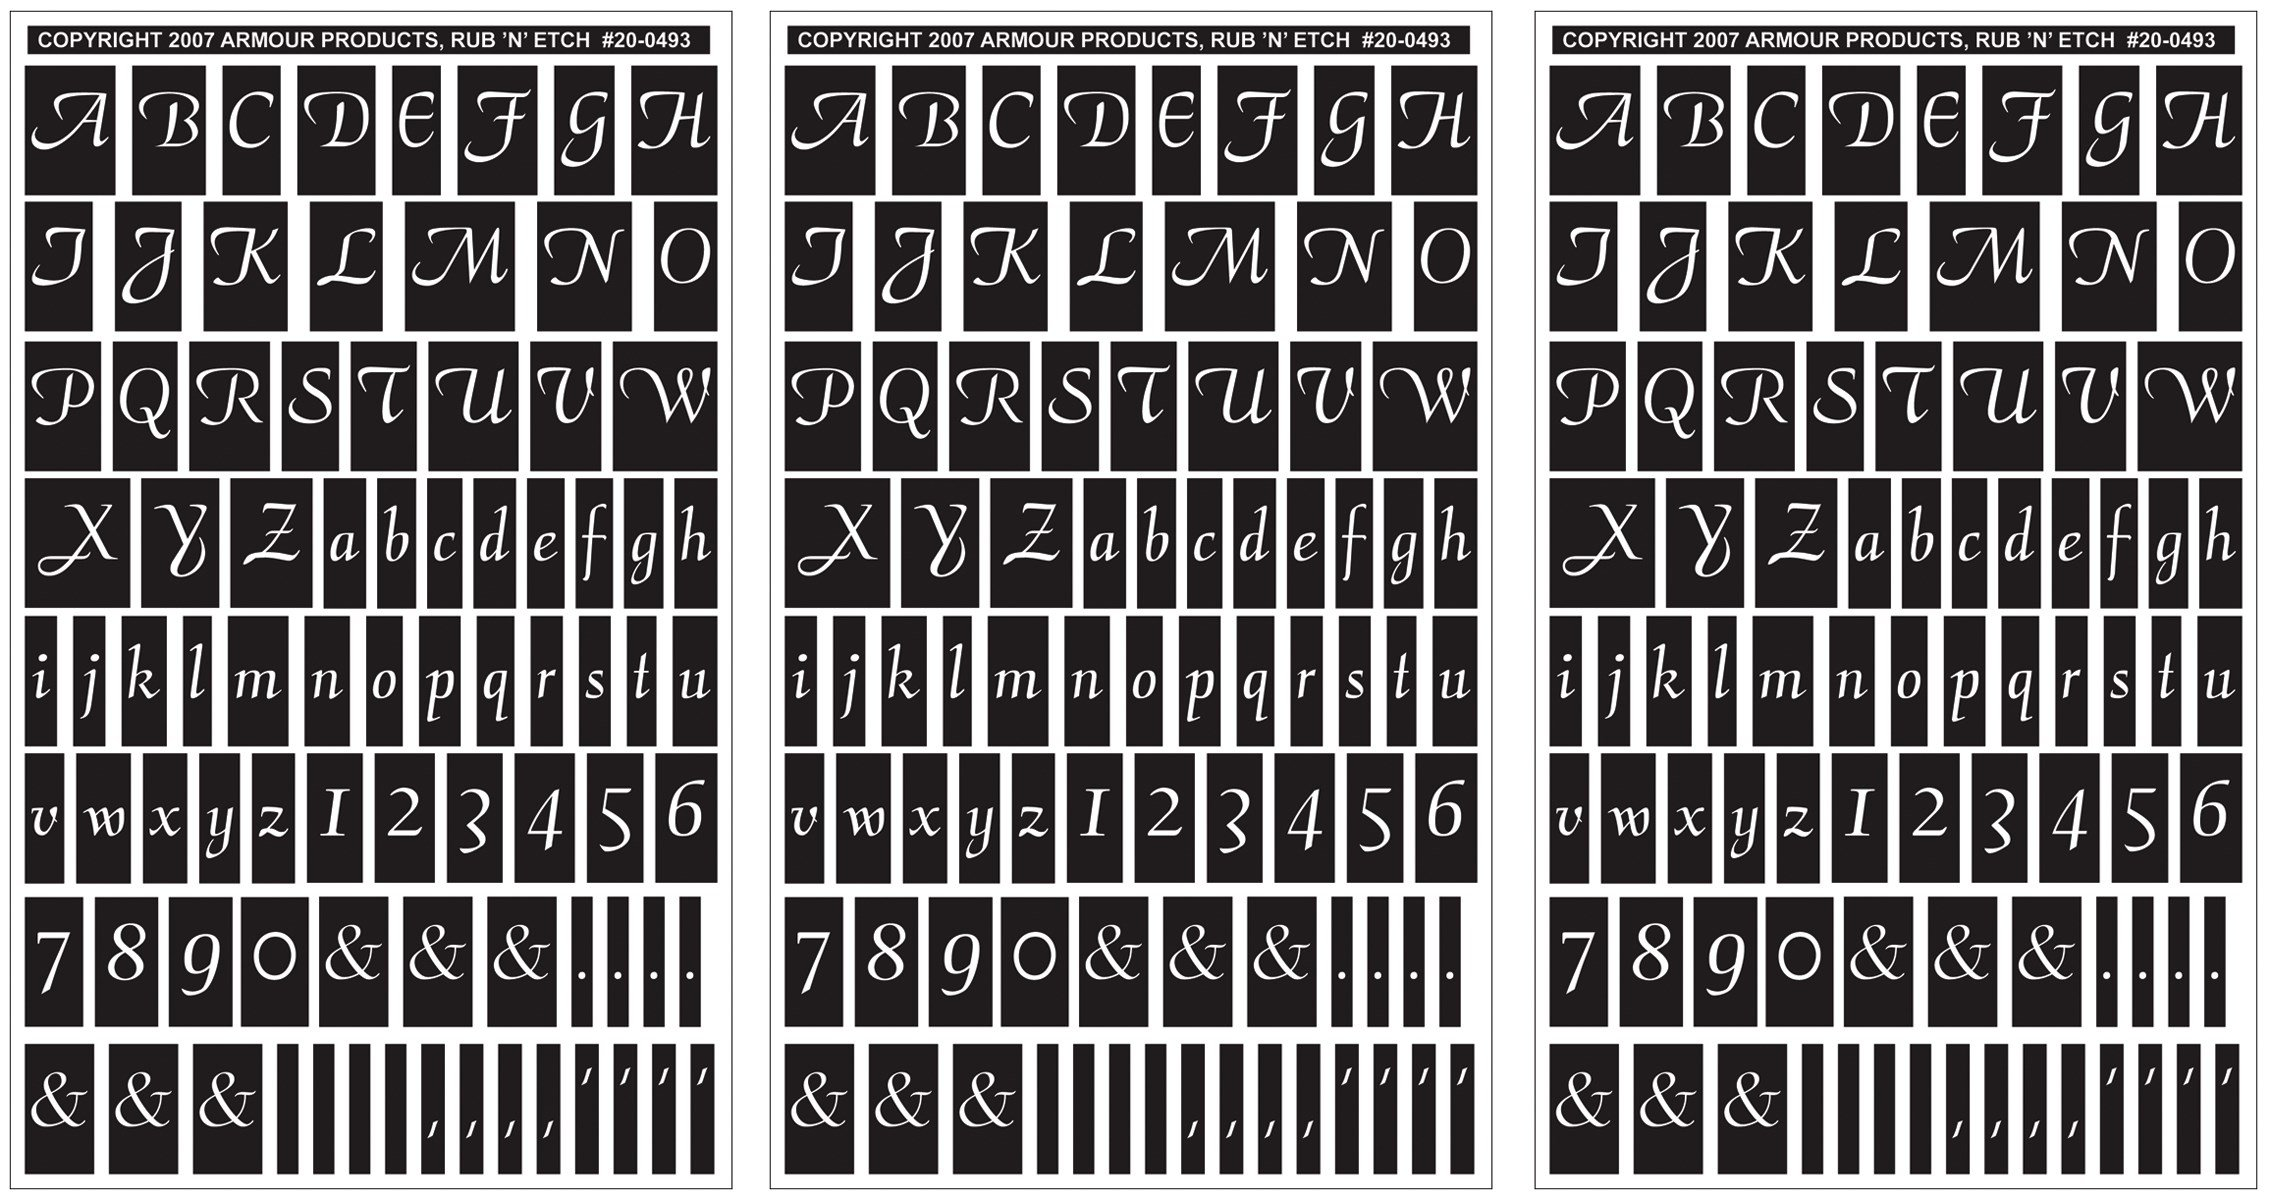 Armour Products Rub 'n' Etch Glass Etching Stencils 5in. x 8in. 3/Pkg Script Letters & Numbers 12-7032